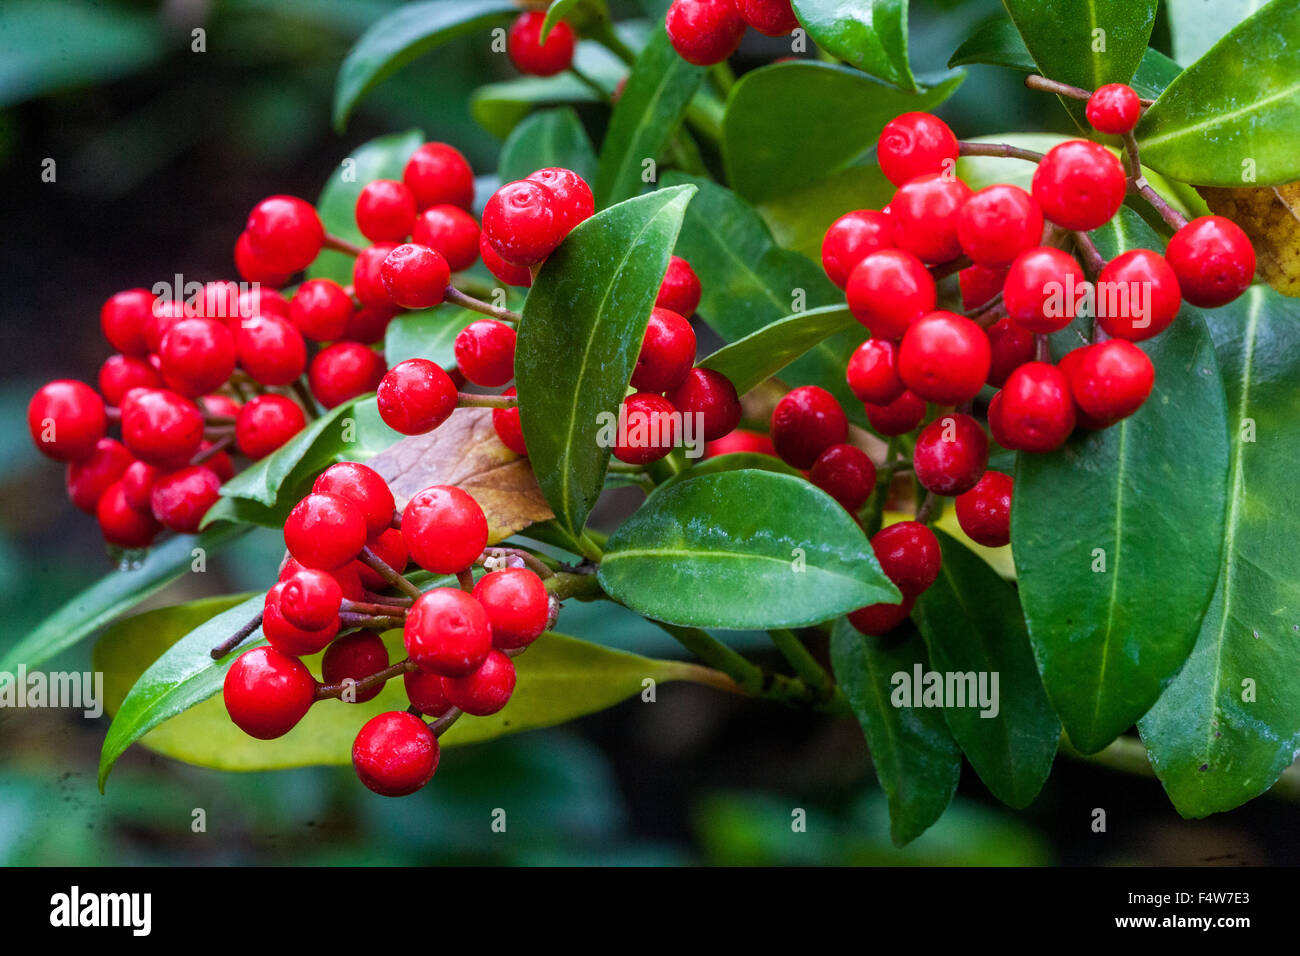 skimmia japonica strauch mit roten beeren herbstfarben stockfoto bild 89065147 alamy. Black Bedroom Furniture Sets. Home Design Ideas